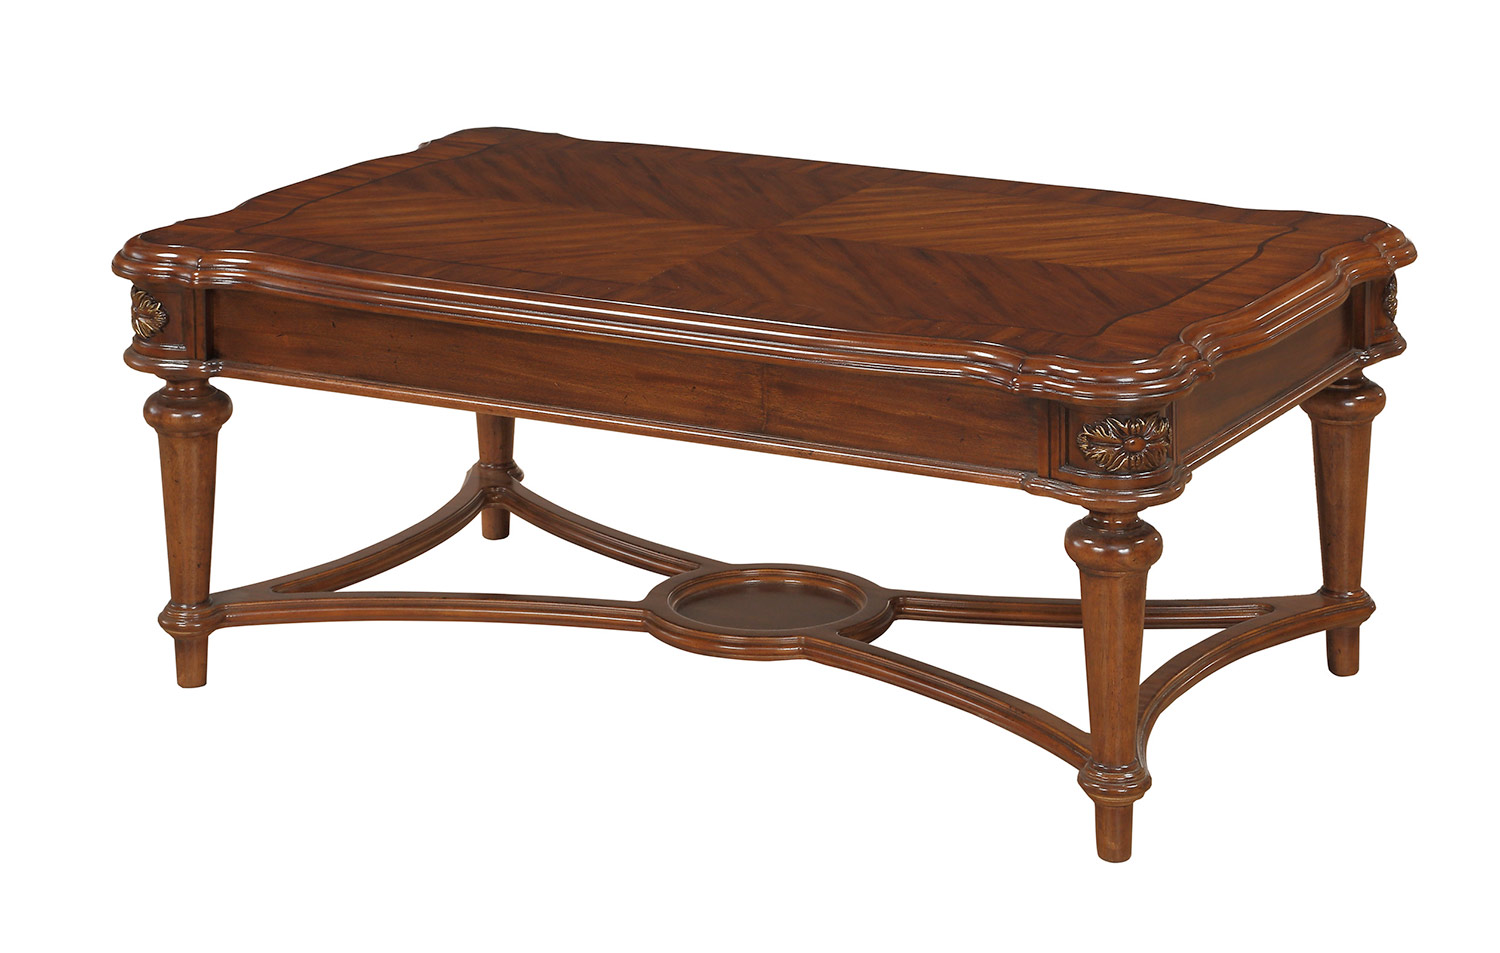 Homelegance Barbary Cocktail/Coffee Table - Cherry